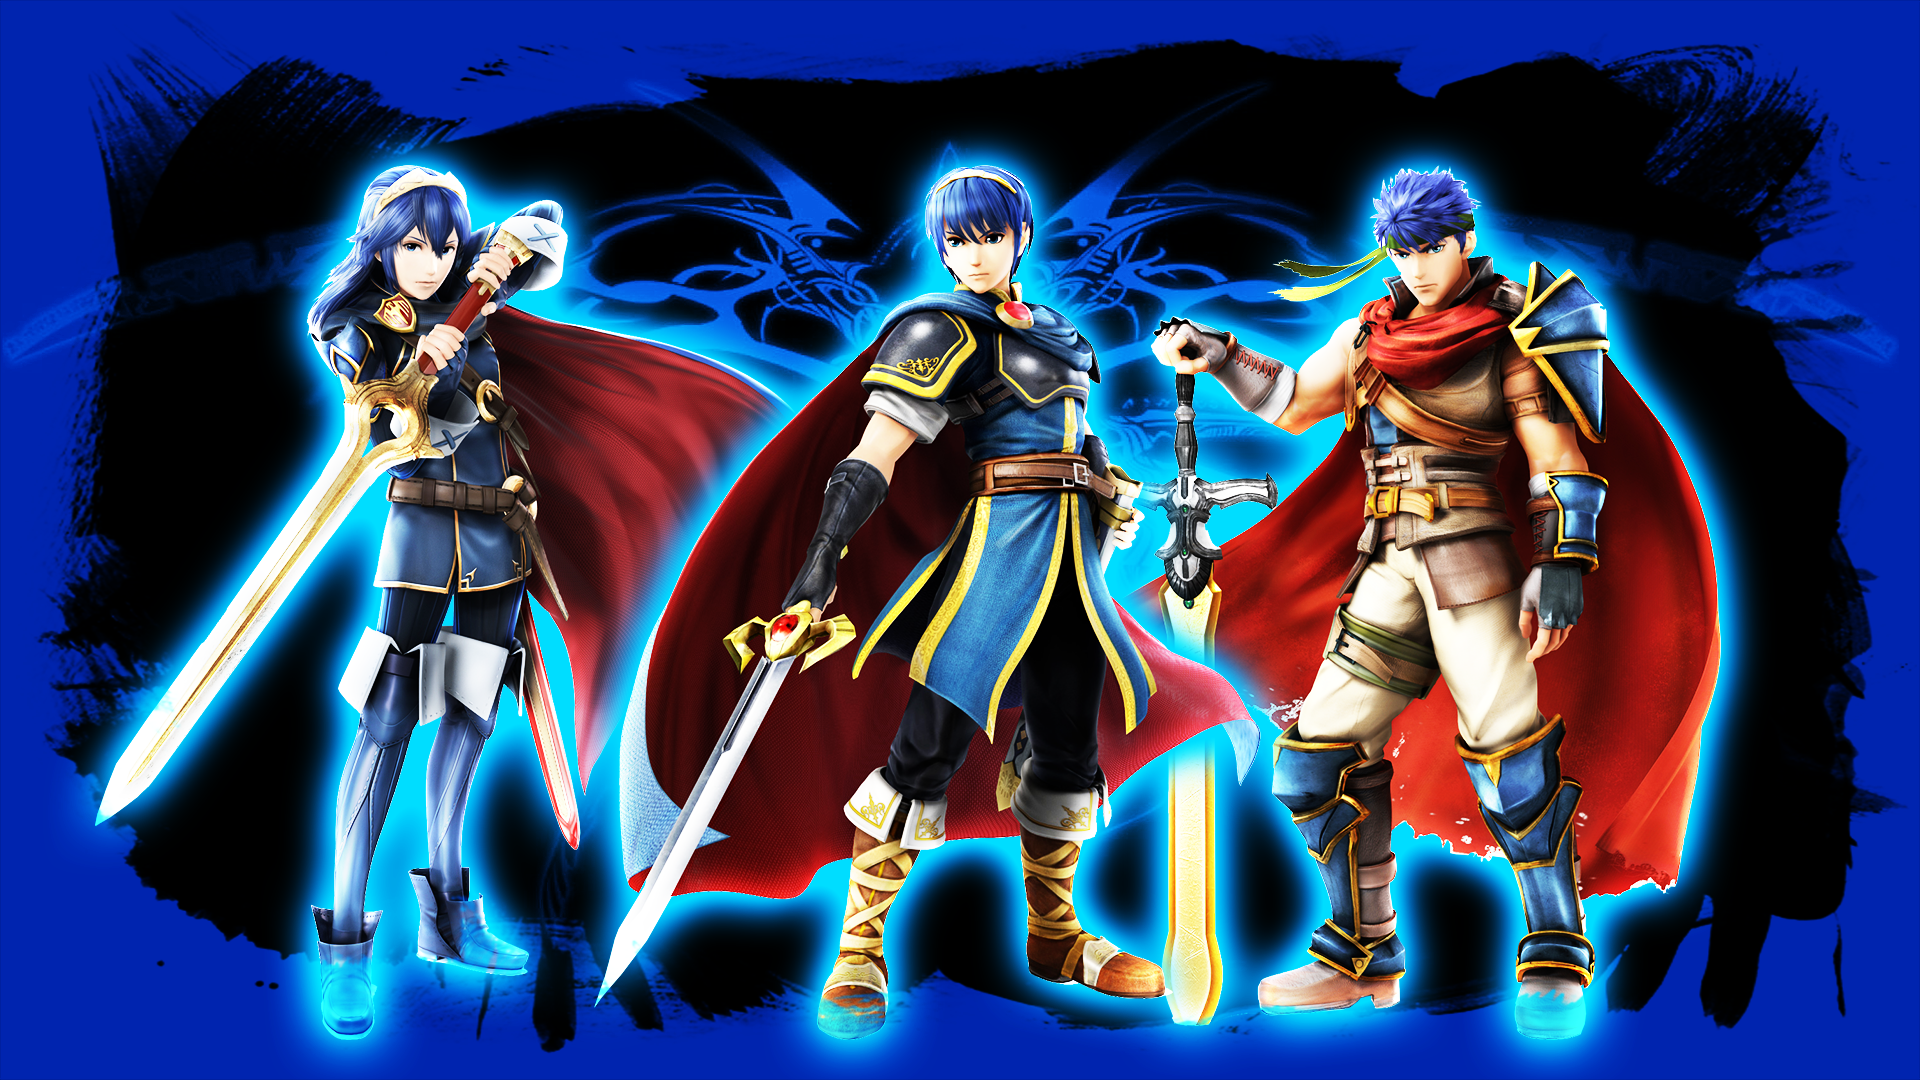 Marth, Ike and Lucina Wallpaper by RogueShadow02 on DeviantArt